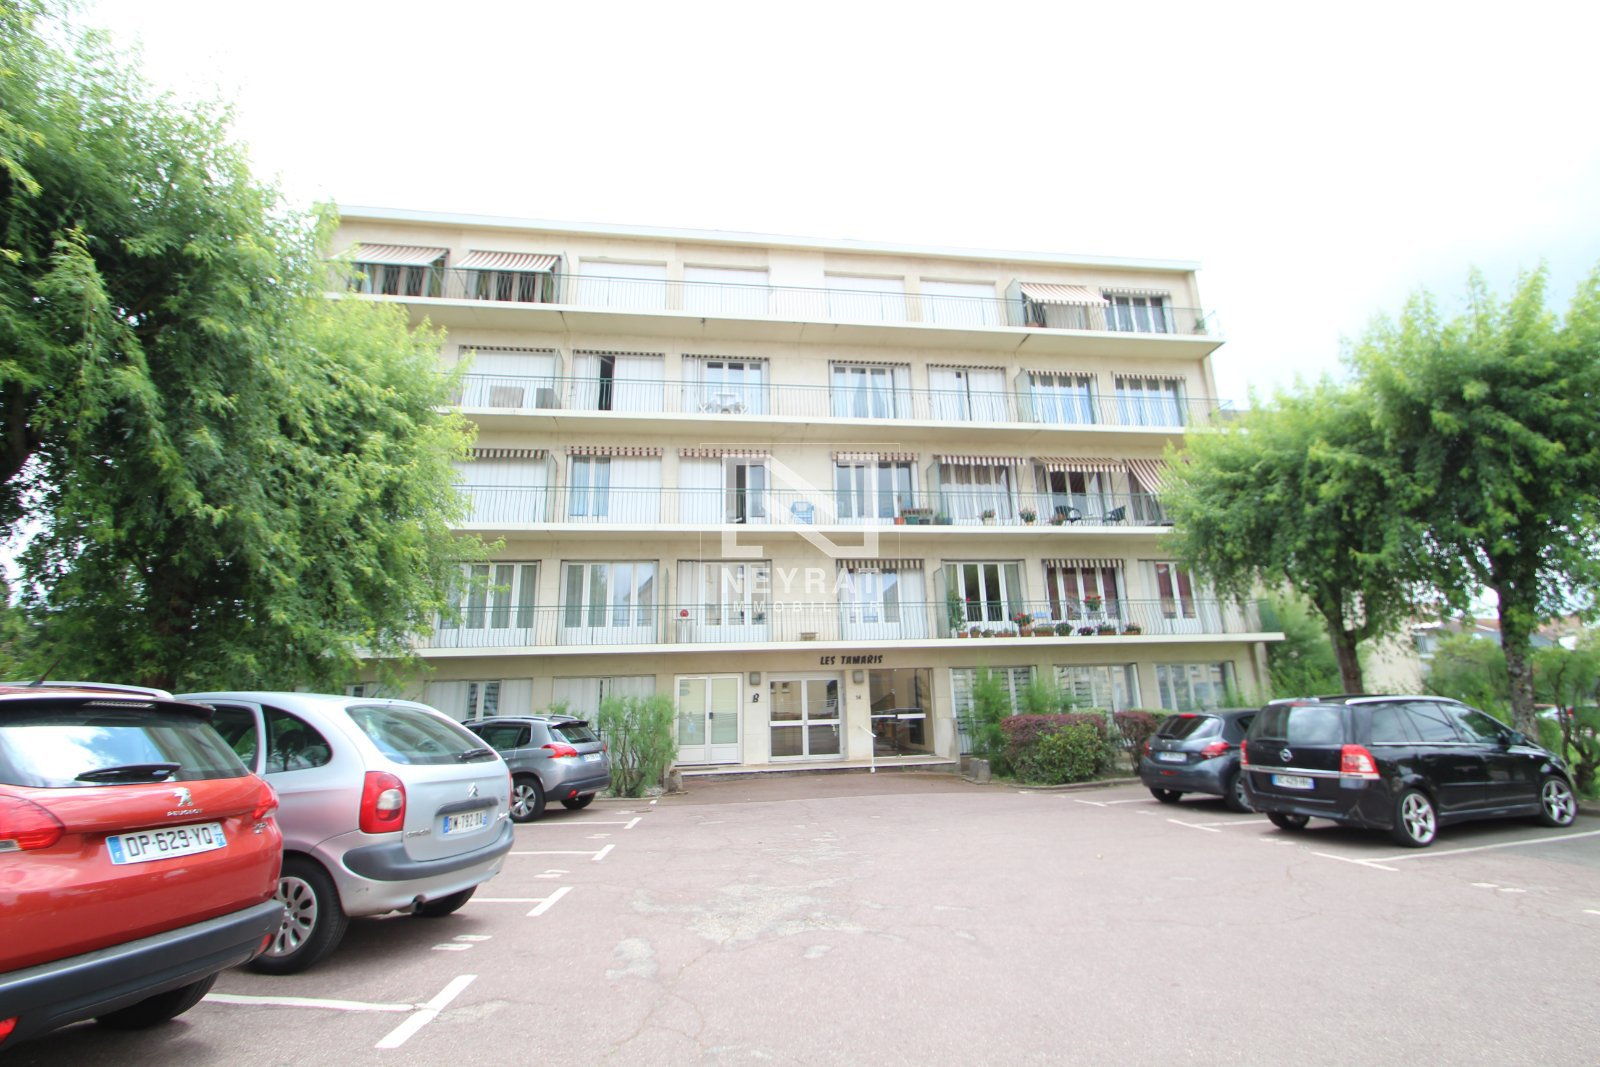 APPARTEMENT T3 A LOUER - PARAY LE MONIAL - 75 m2 - 586 € charges comprises par mois